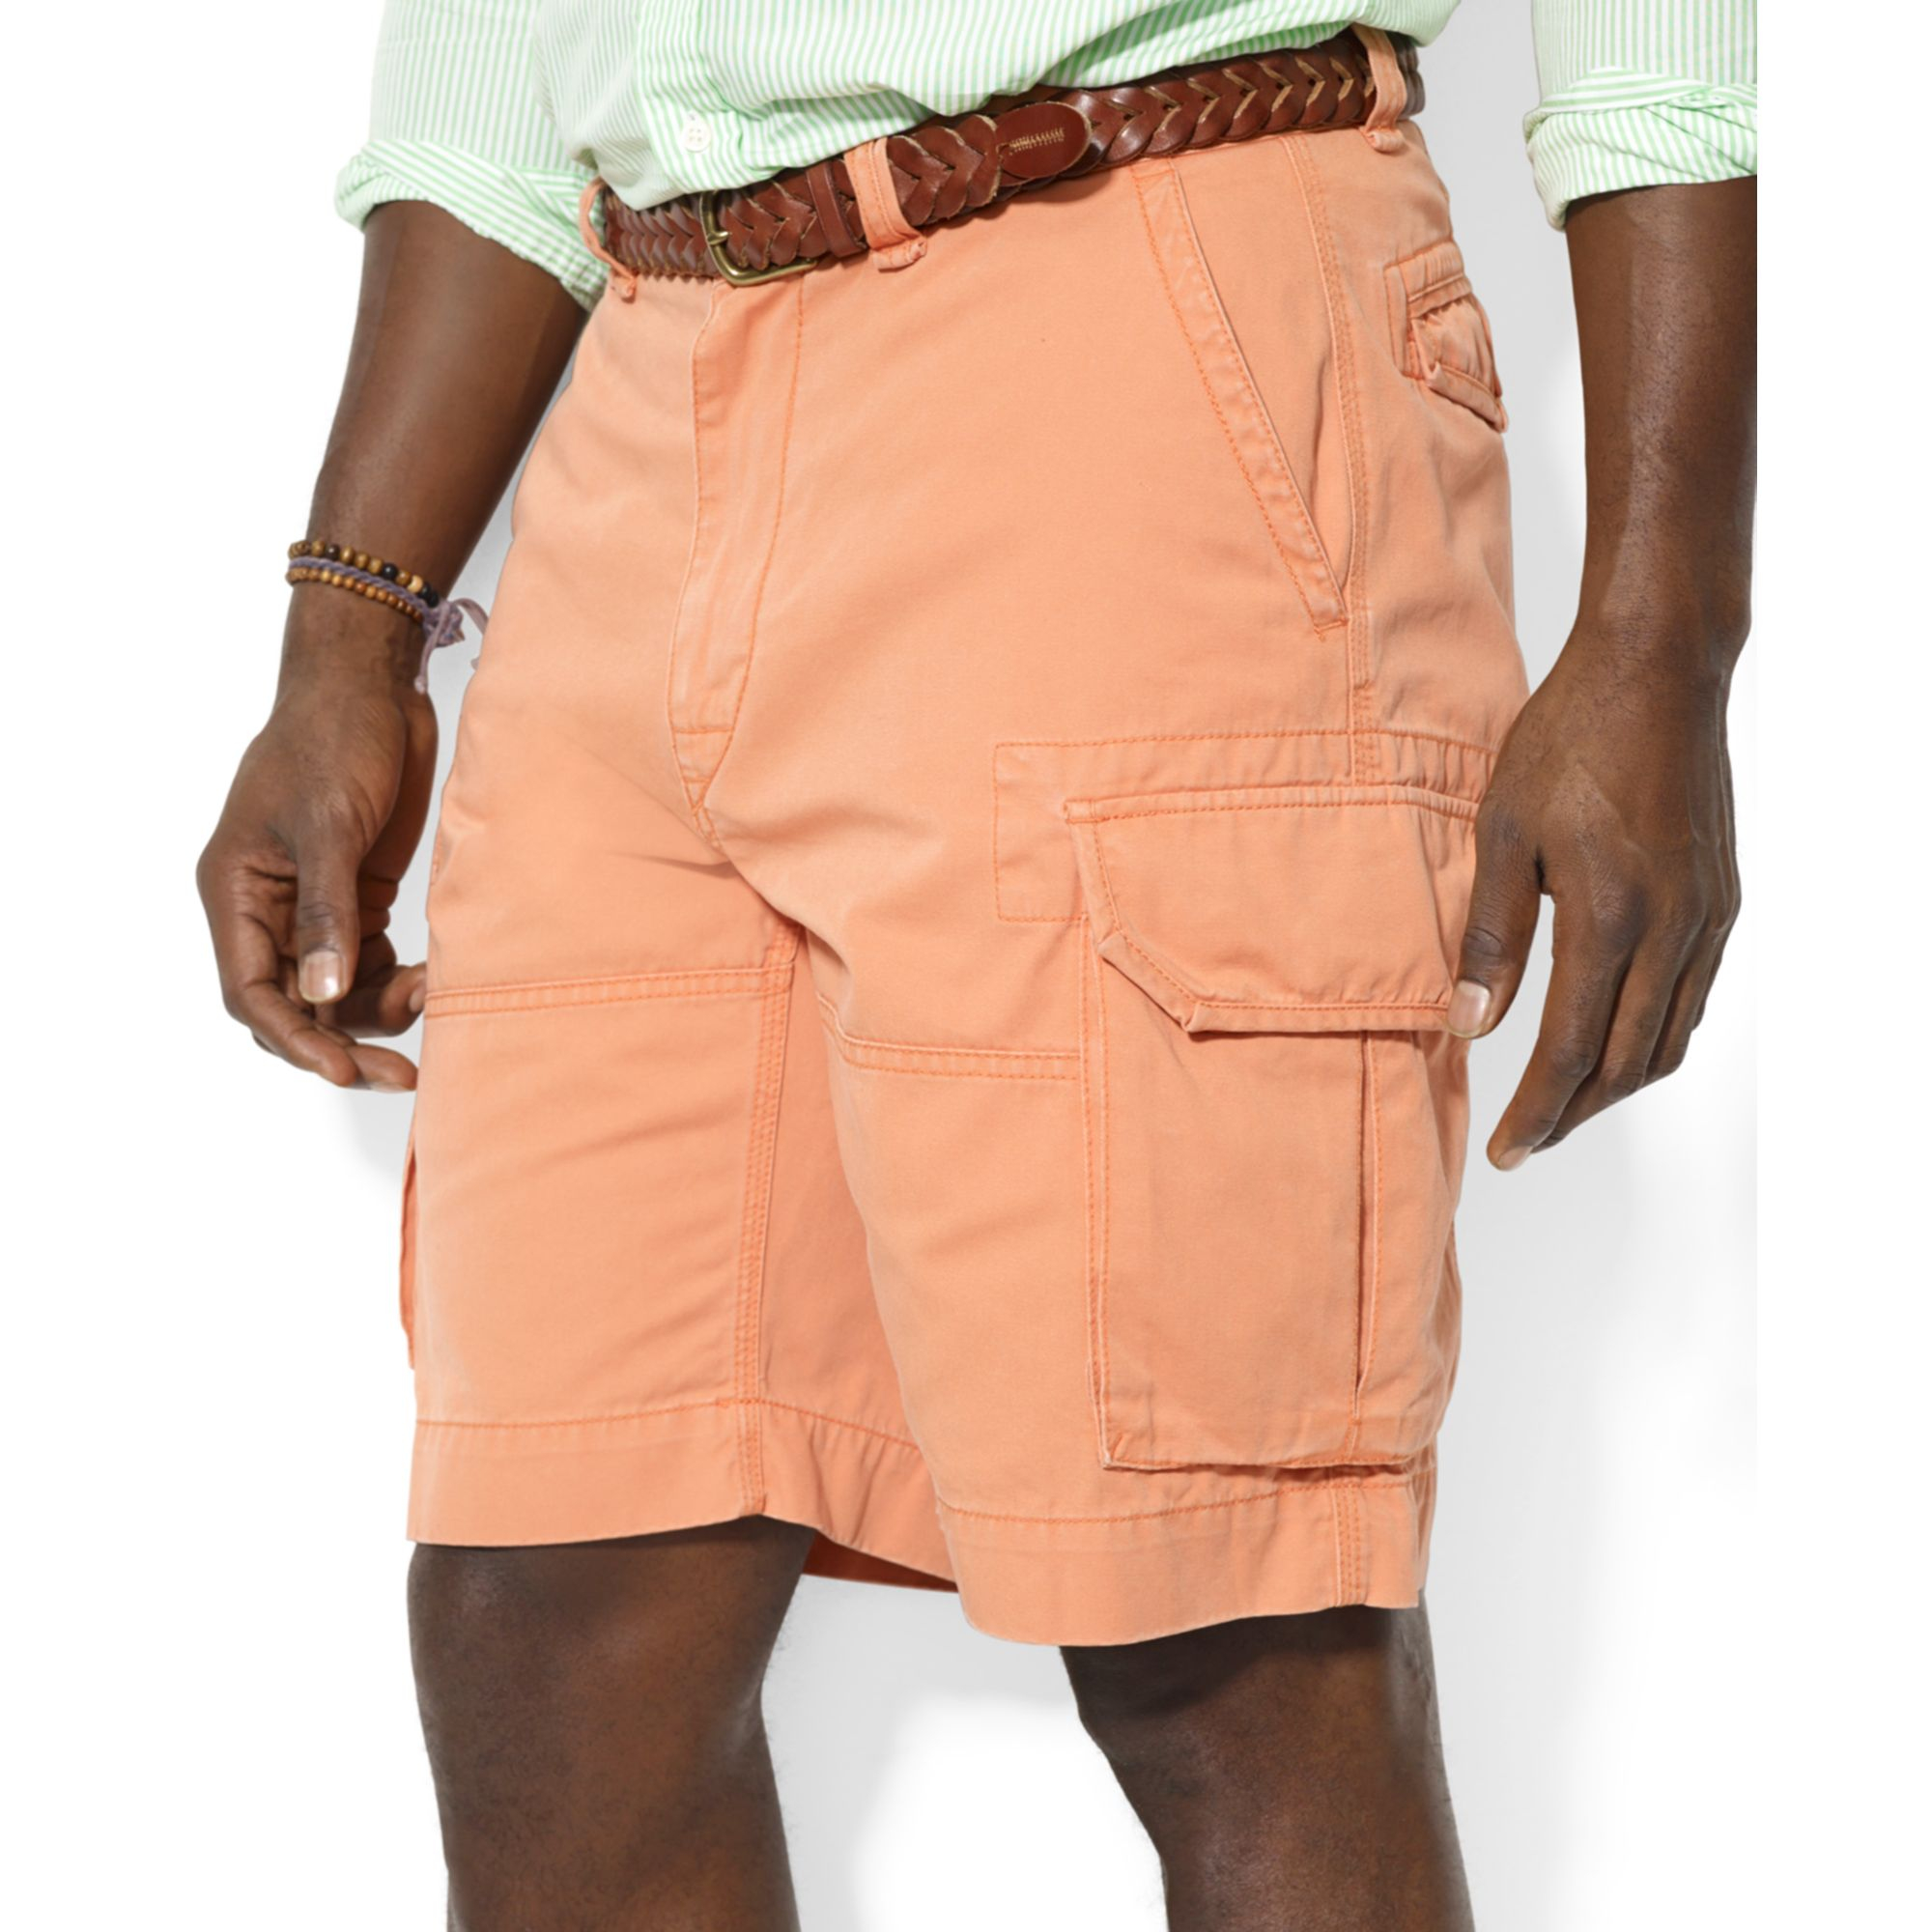 Shop our huge selection and take advantage of international shipping and easy returns today. Great prices on big and tall cargo shorts available online now.